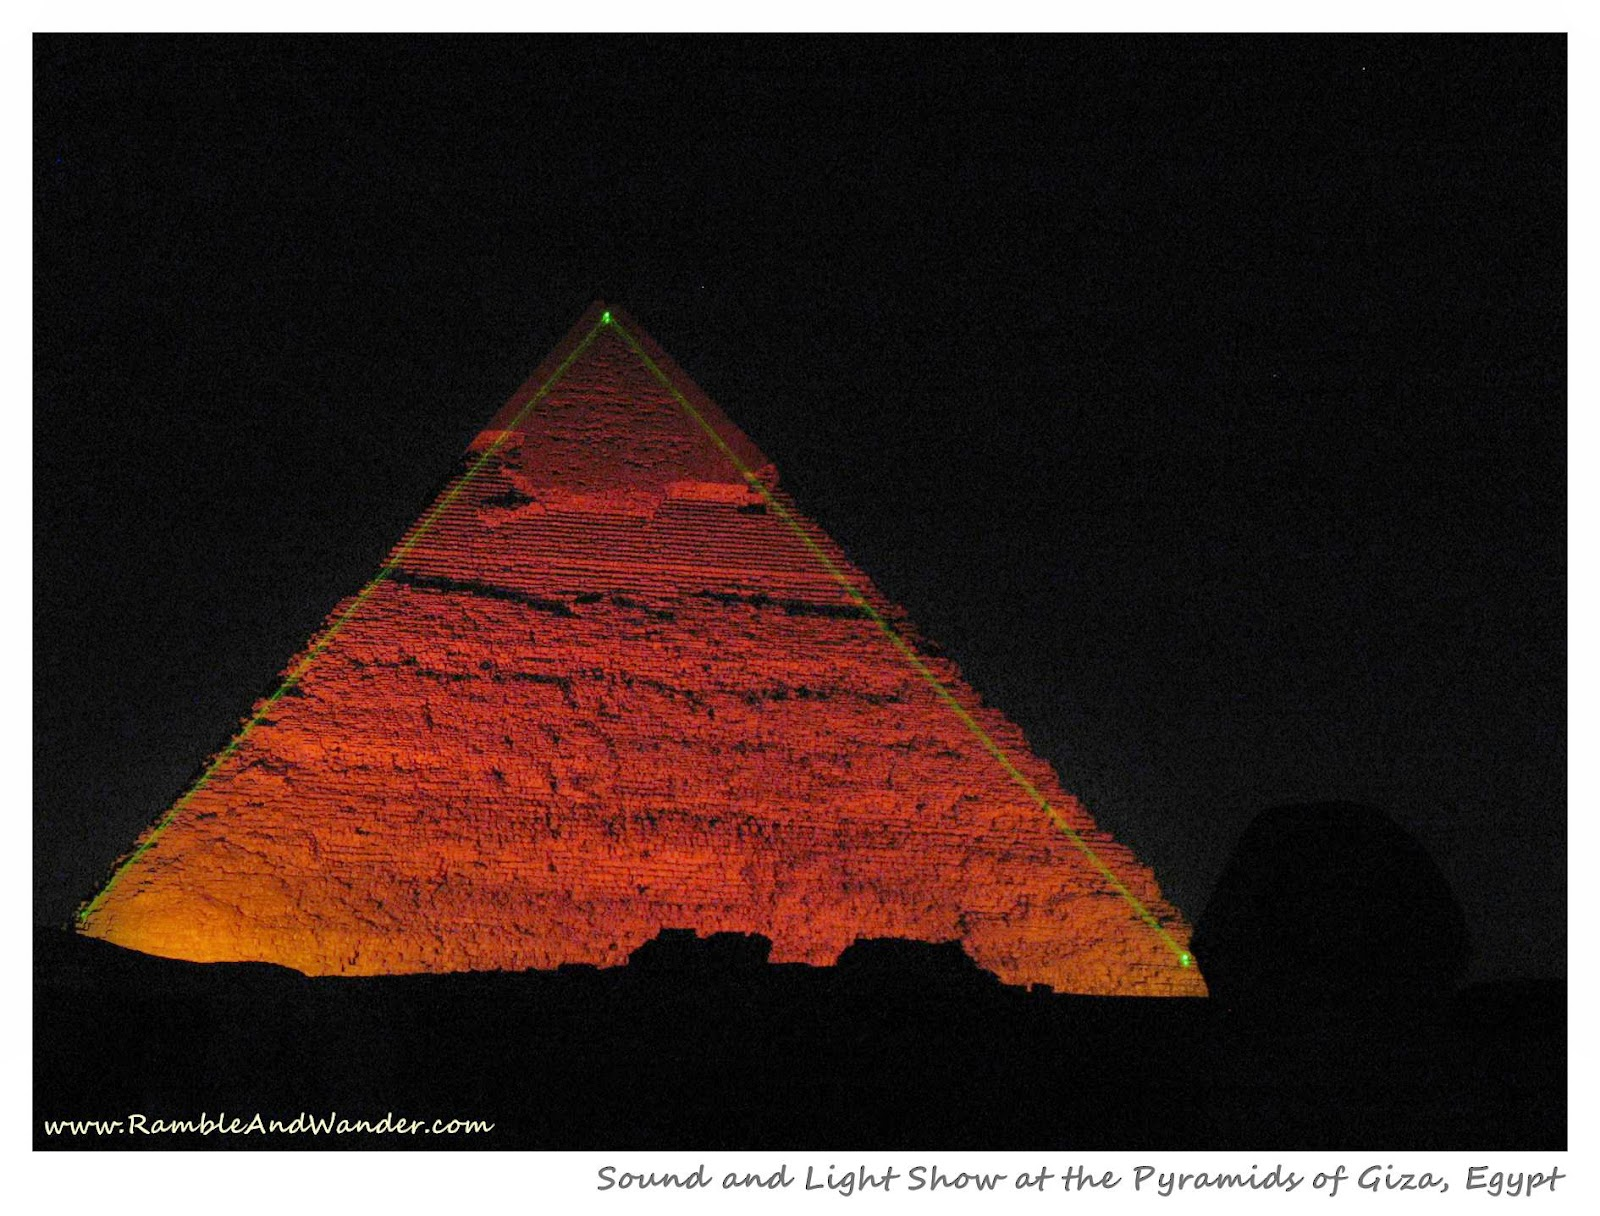 Sound and Light Show at the Pyramids of Giza, Egypt | www.rambleandwander.com